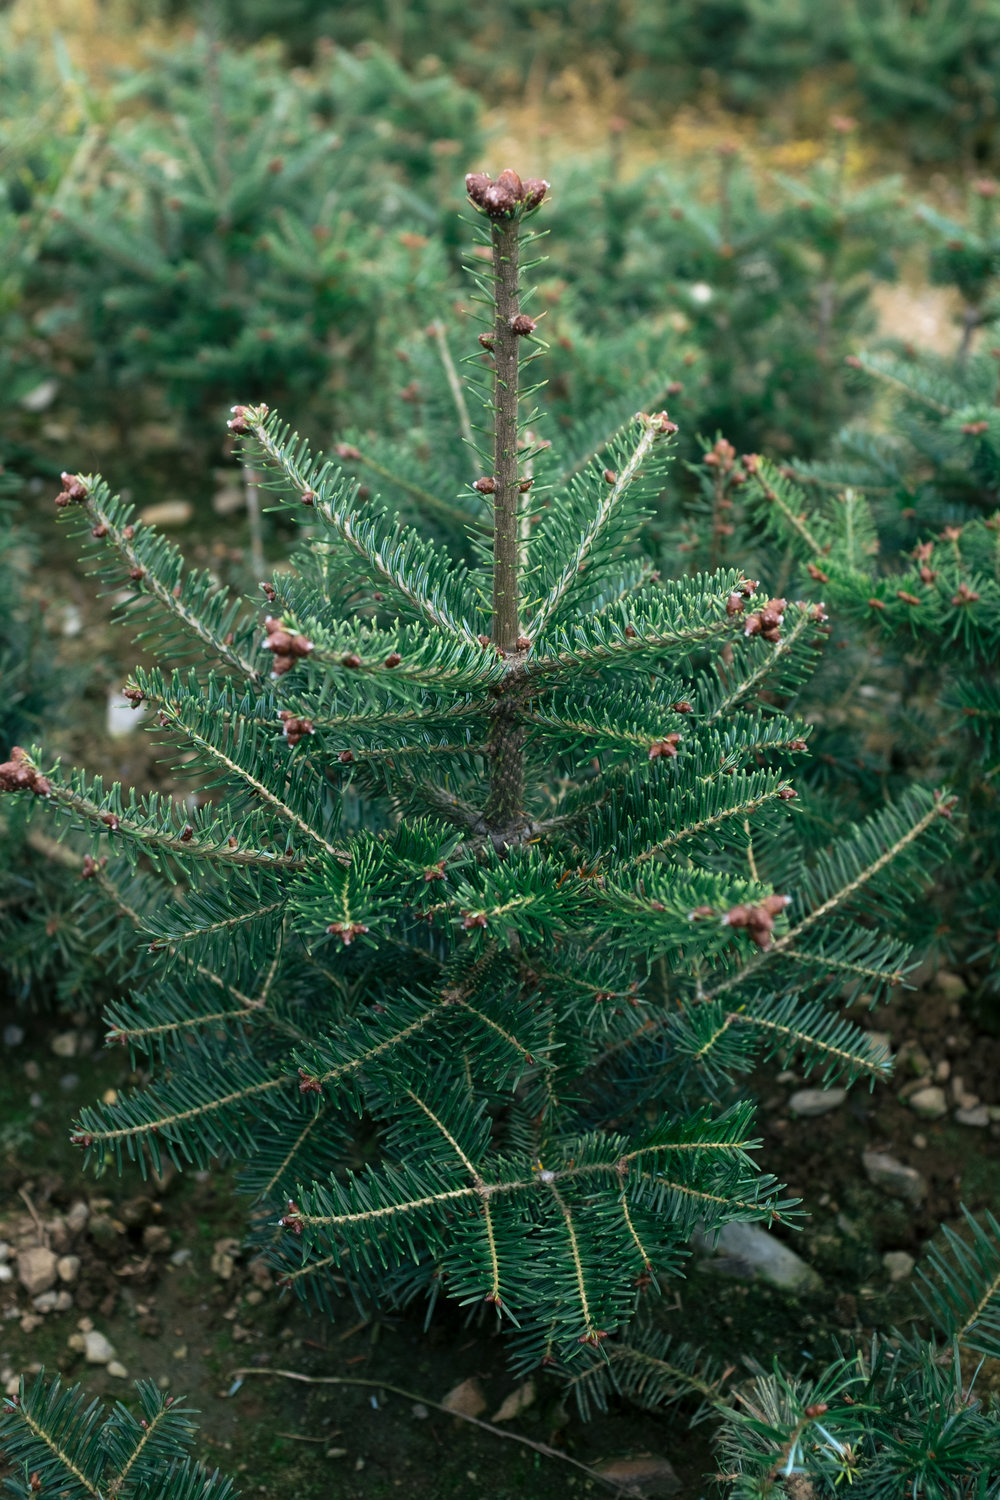 Bracted_Balsam_Fir_tree.jpg